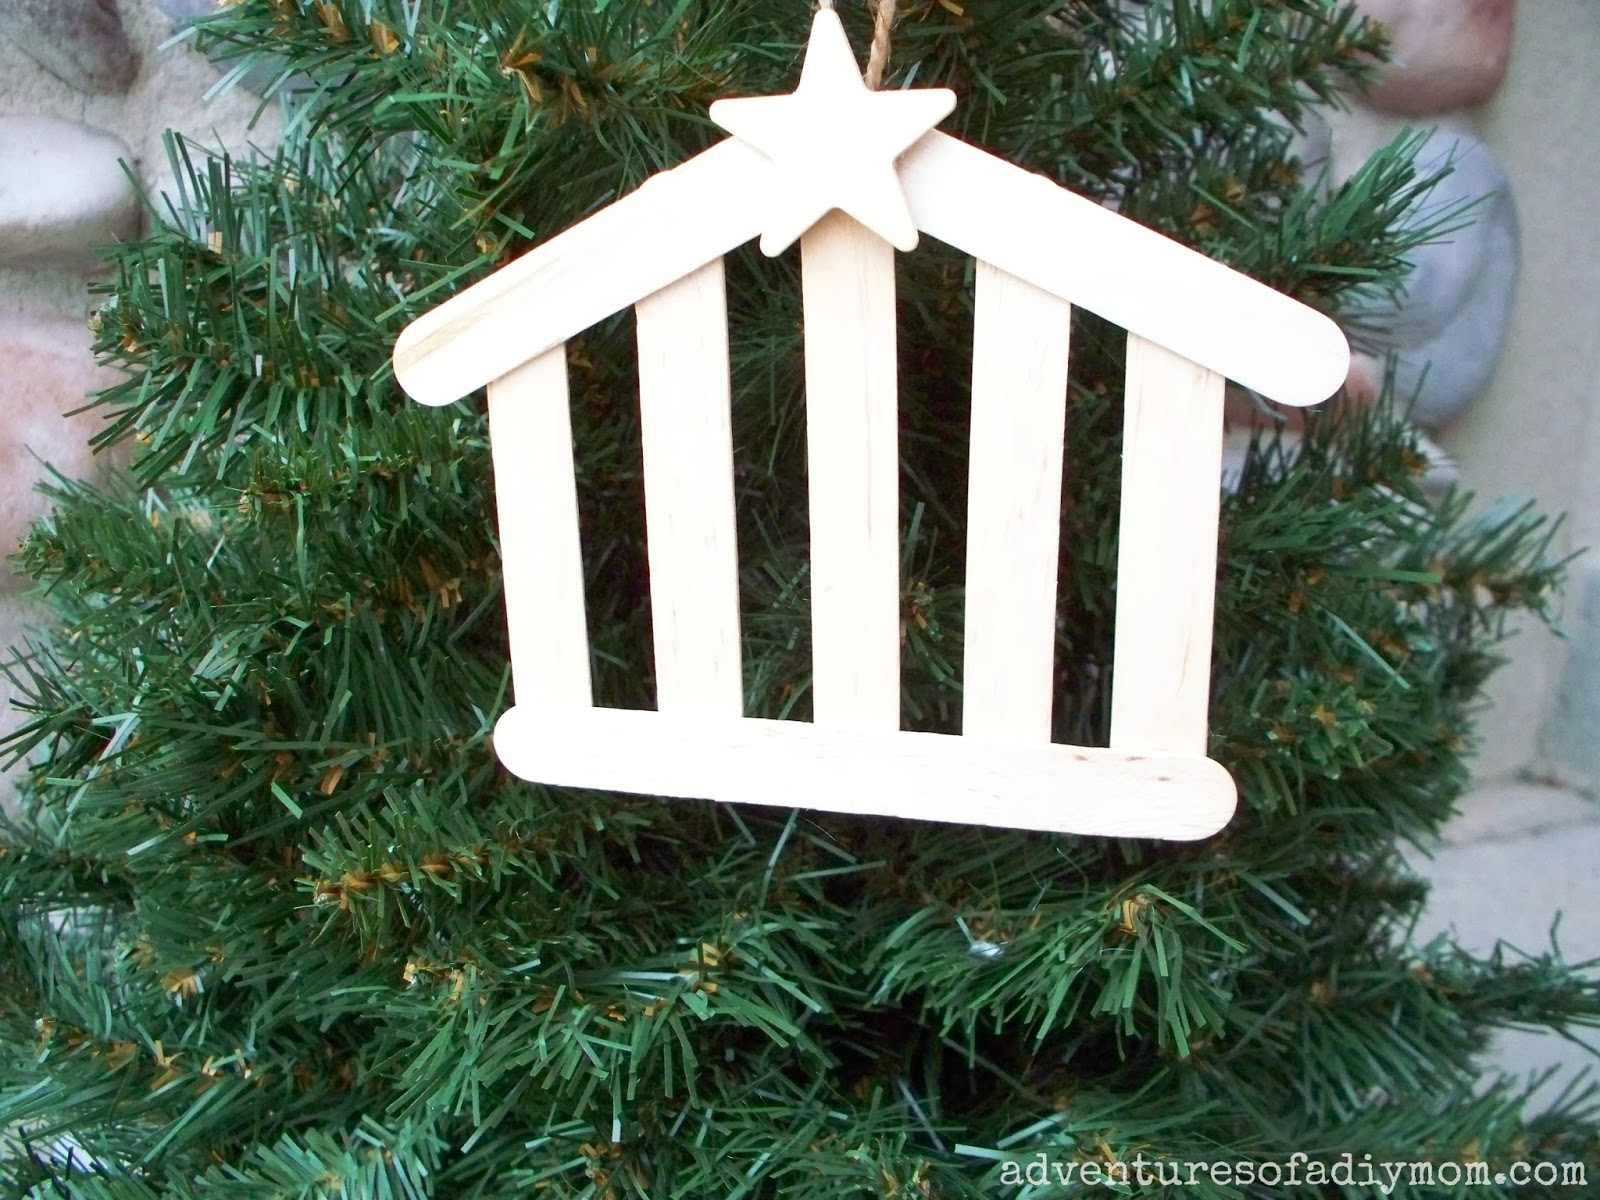 How to Make a Nativity Stable Ornament - Adventures of a ...